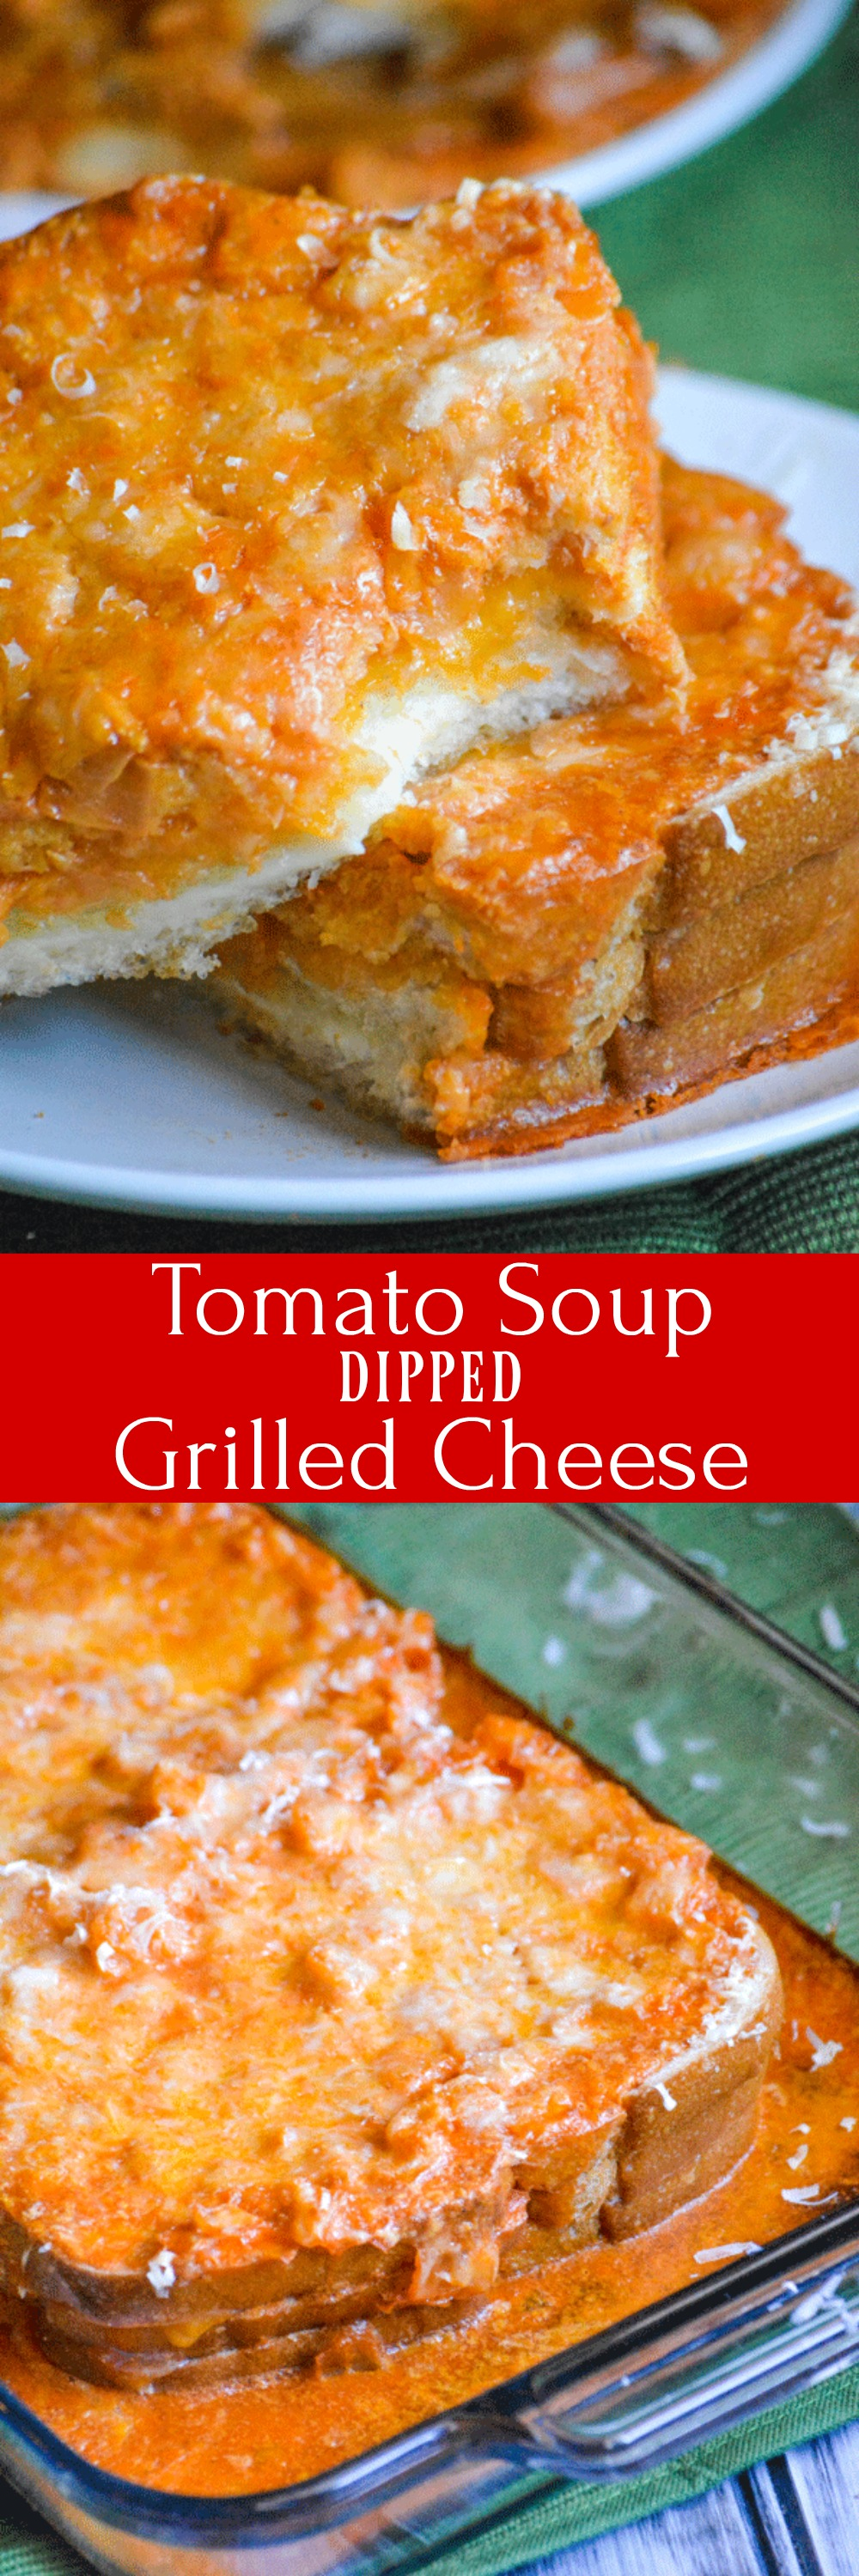 Tomato soup & grilled cheese are a classic pairing, and a go-to childhood favorite for so many of us. Bring it up to date with these Tomato Soup Dipped Grilled Cheese Sandwiches. Less mess, no leftovers, and ALL the flavor!